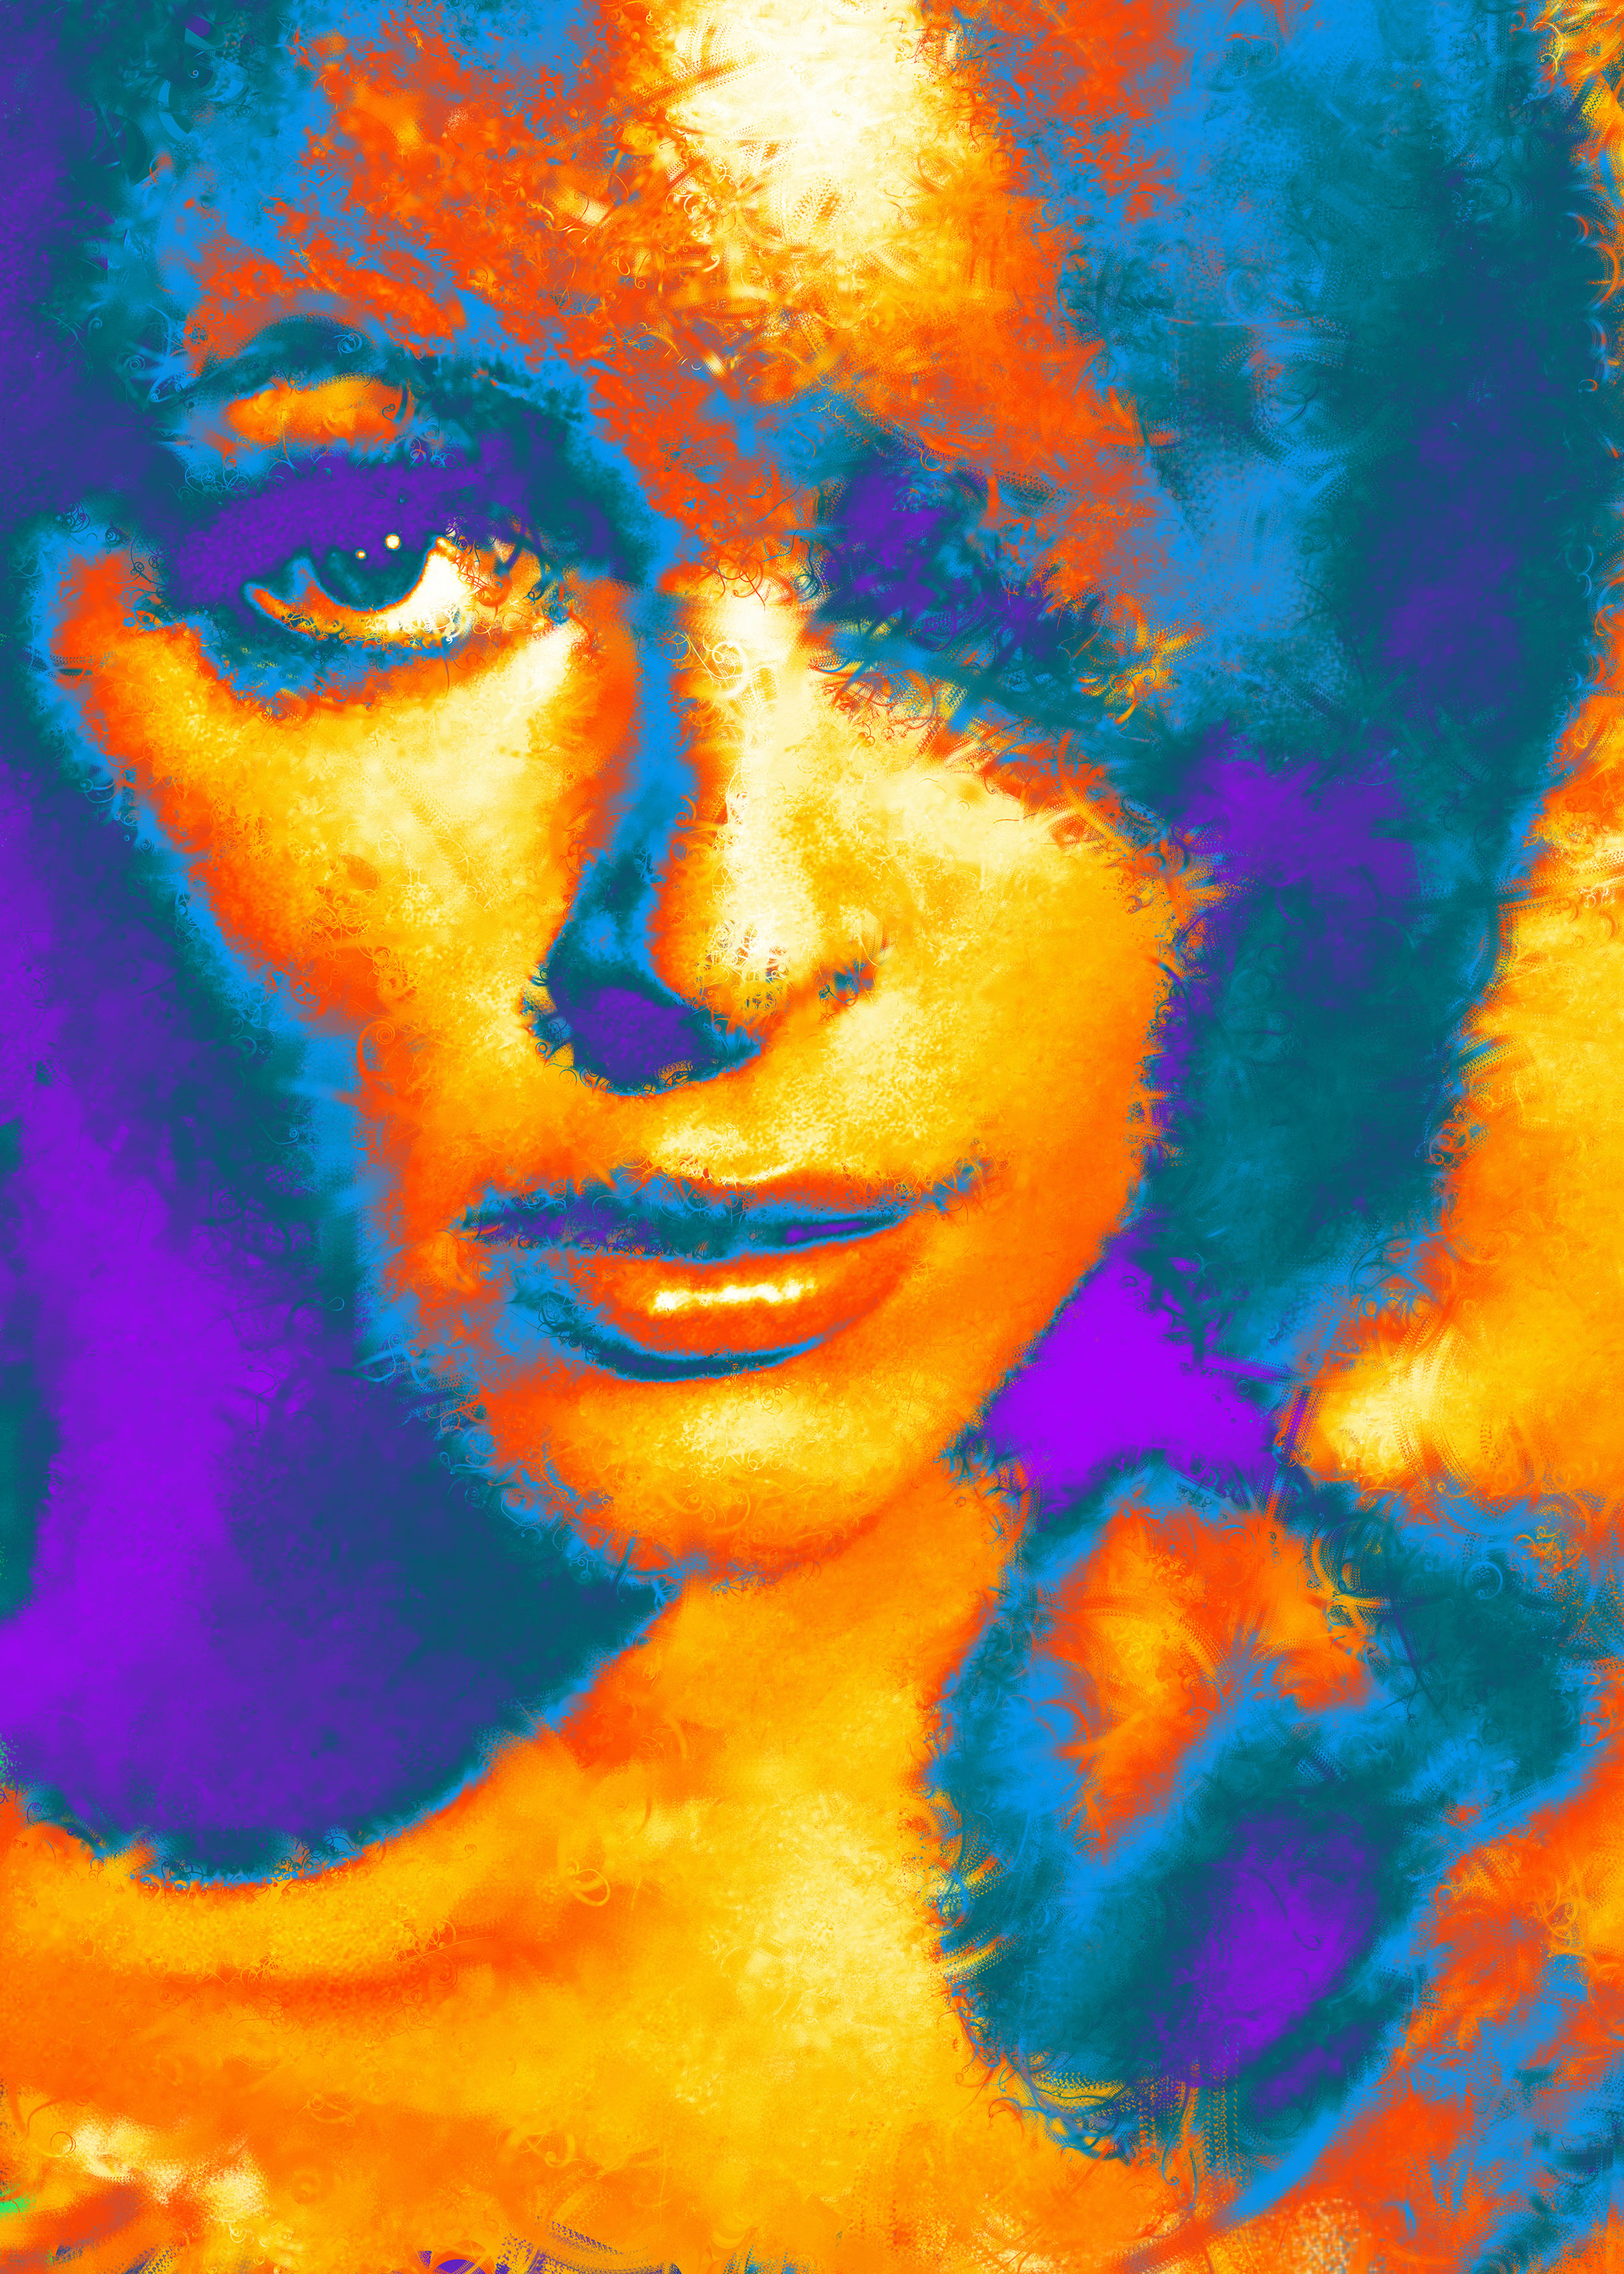 Sharon Tate Portrait series - LACDA Electron Salon Show, Los Angeles